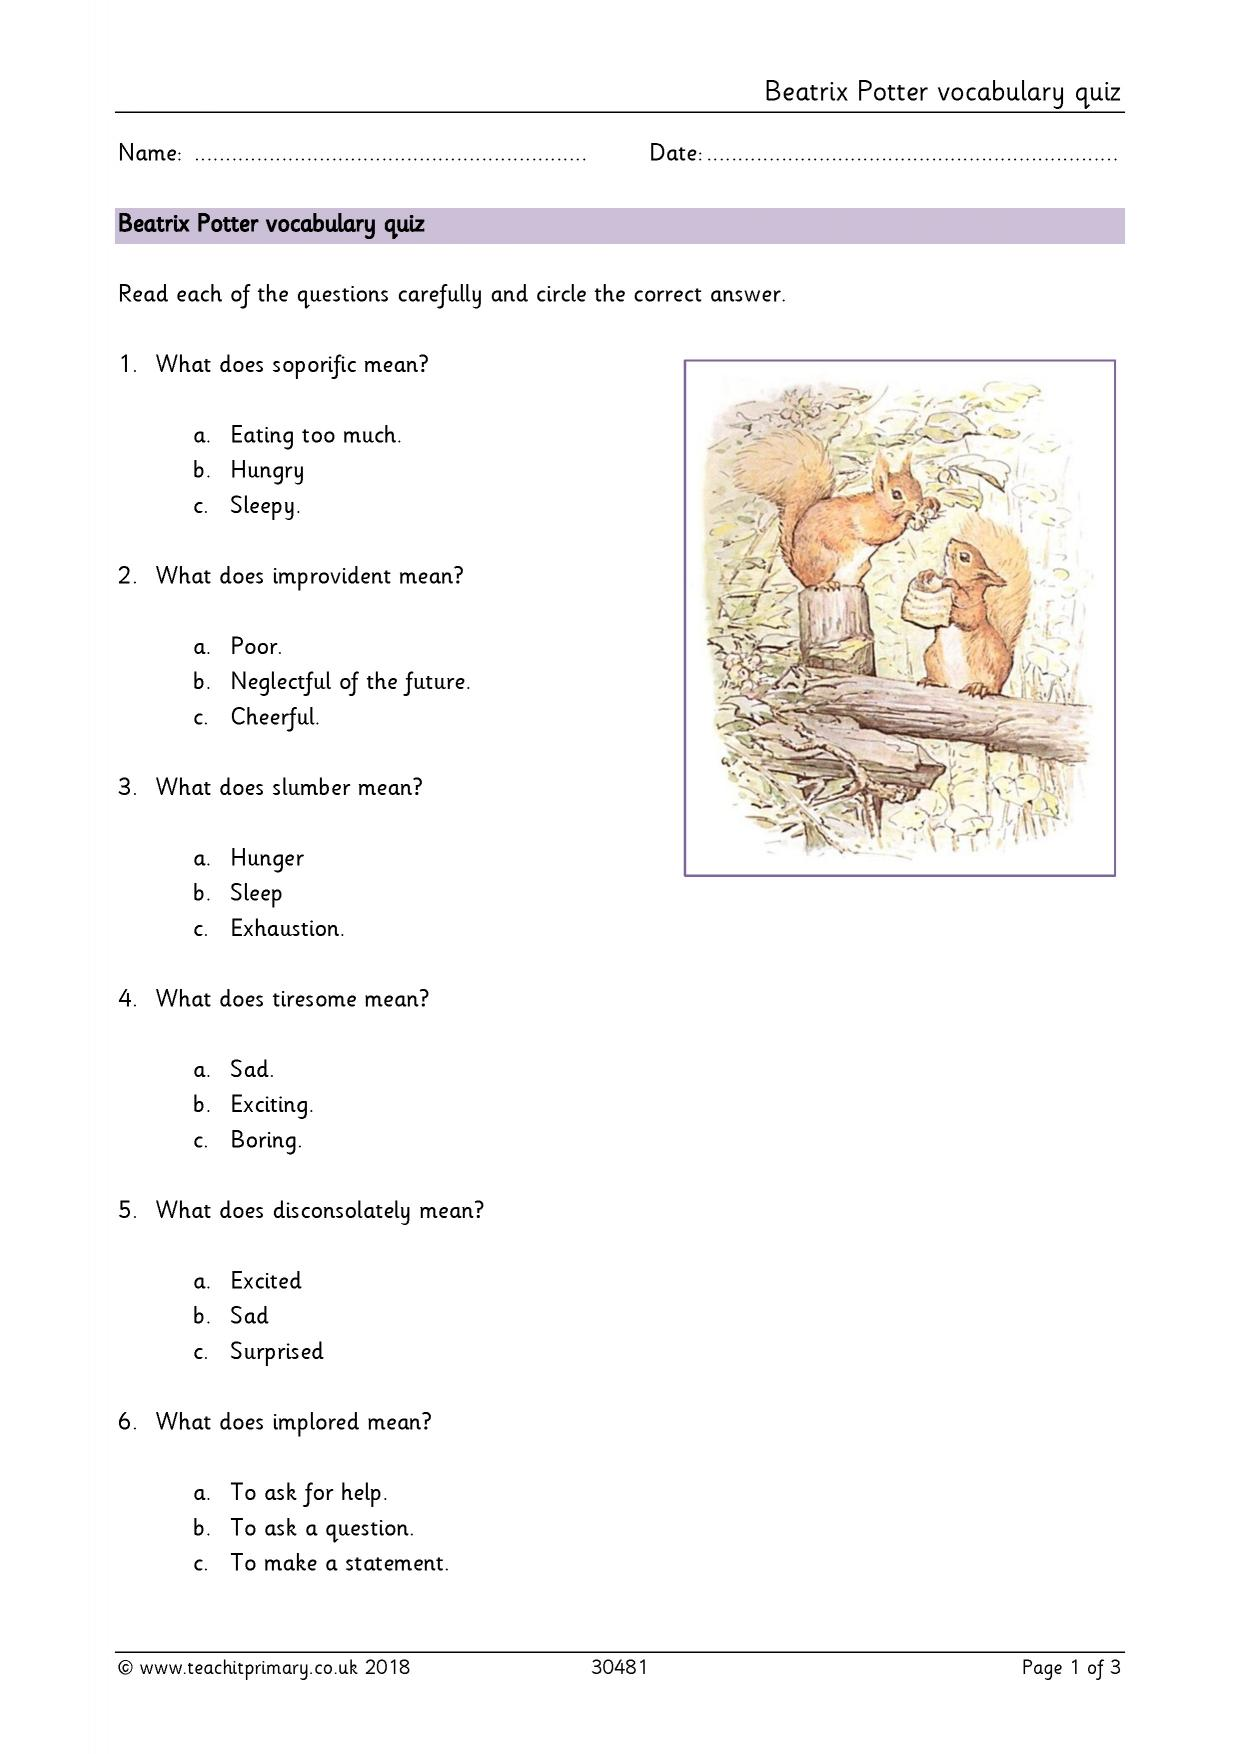 Beatrix Potter Vocabulary Quiz